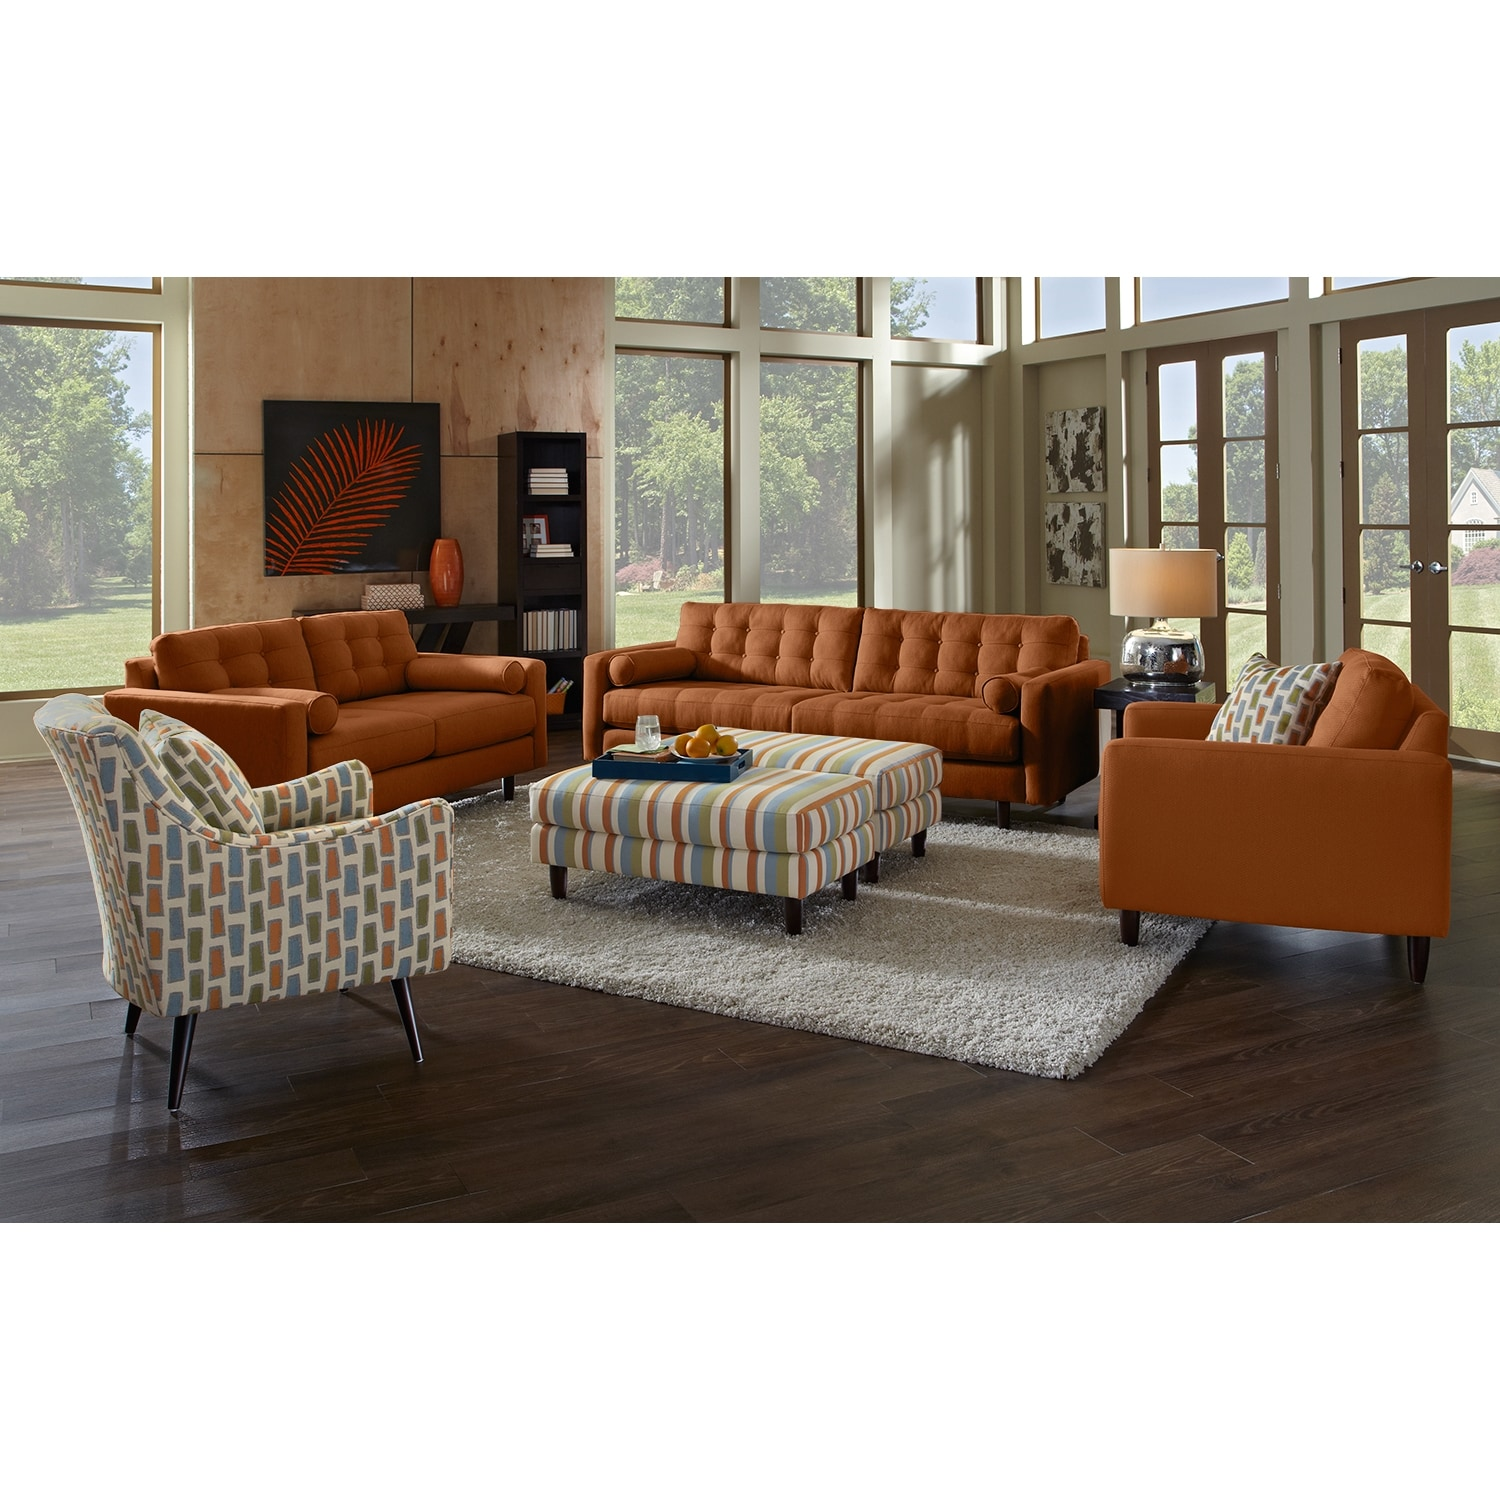 Avenue Ii Upholstery 3 Pc Living Room W Accent Chair